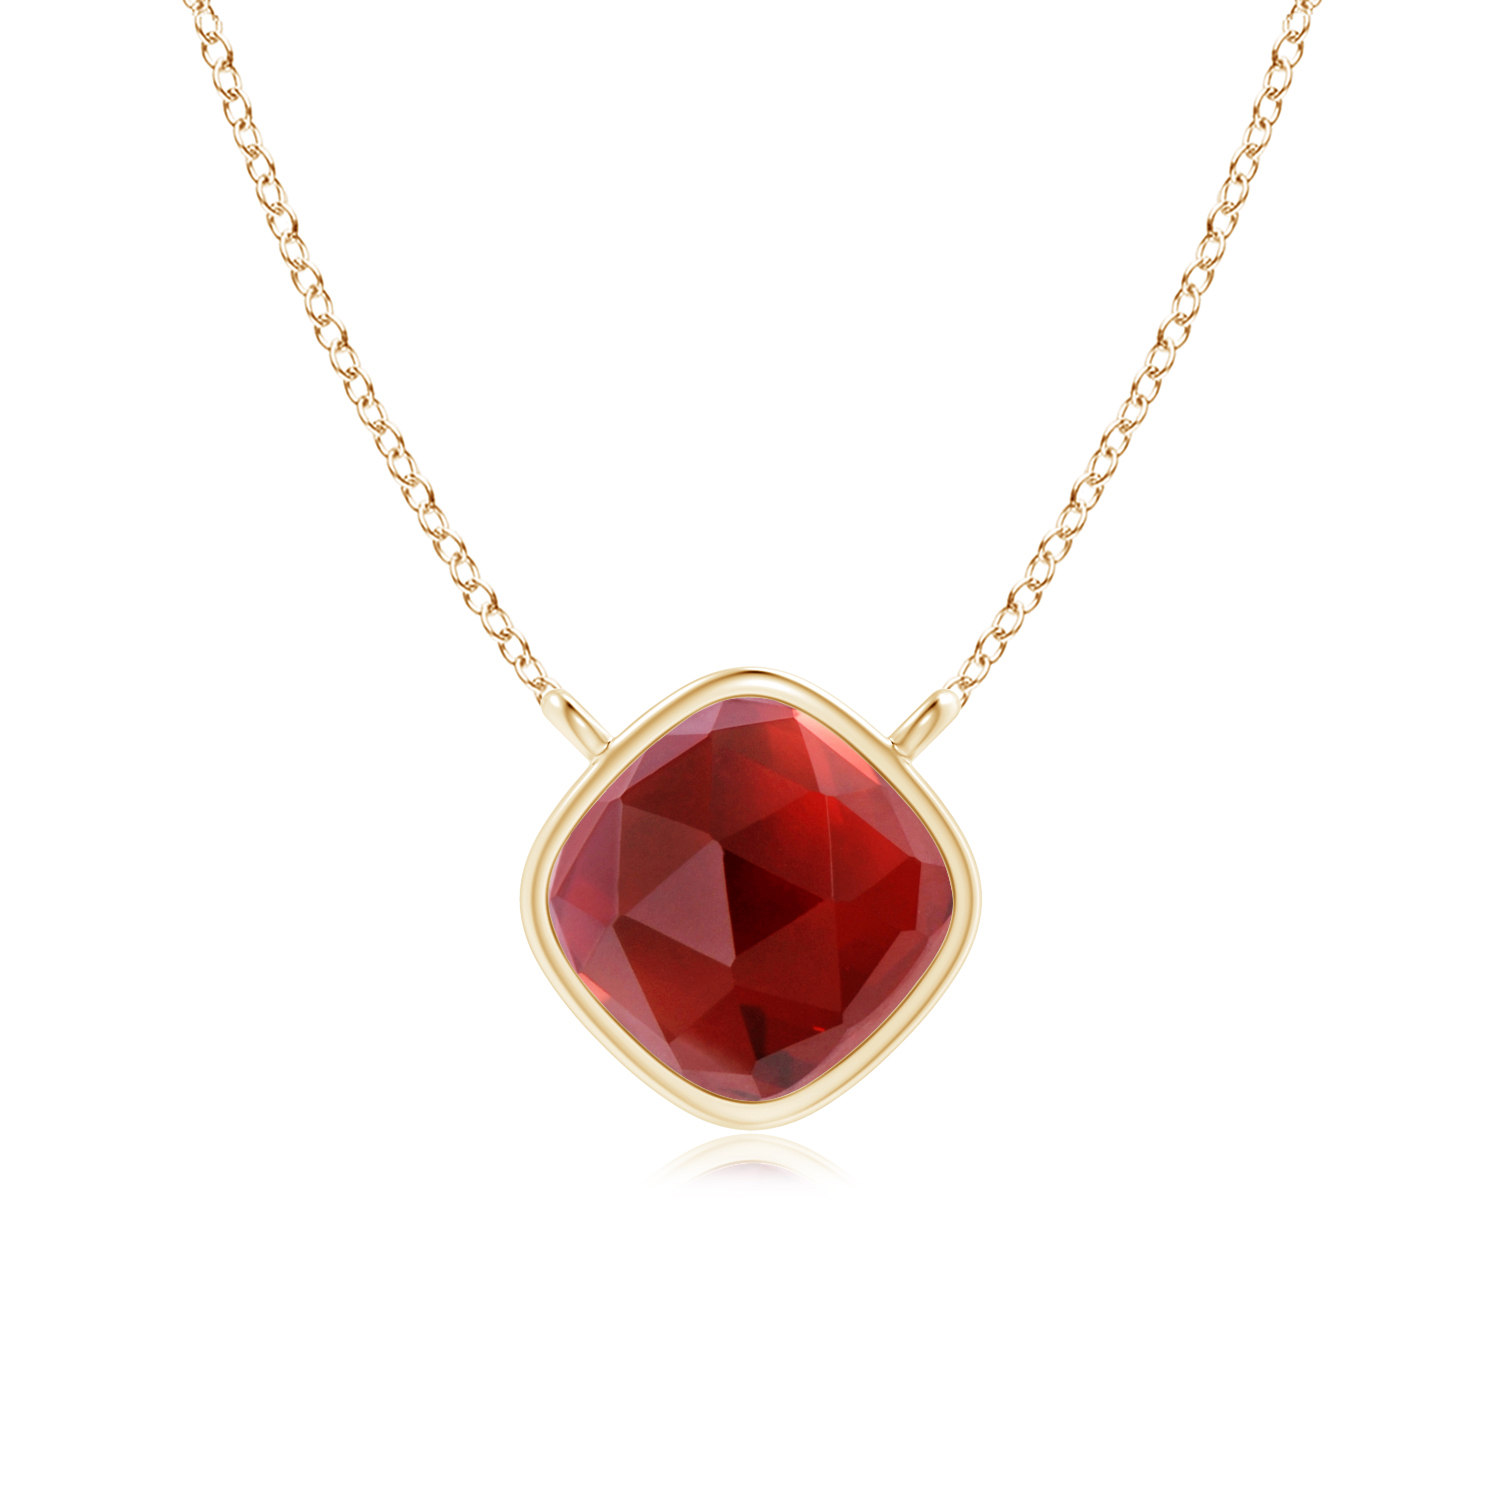 January Birthstone Pendant Necklaces Bezel Set Cushion Garnet Solitaire Necklace in 14K Rose Gold (5mm Garnet)... by Angara.com